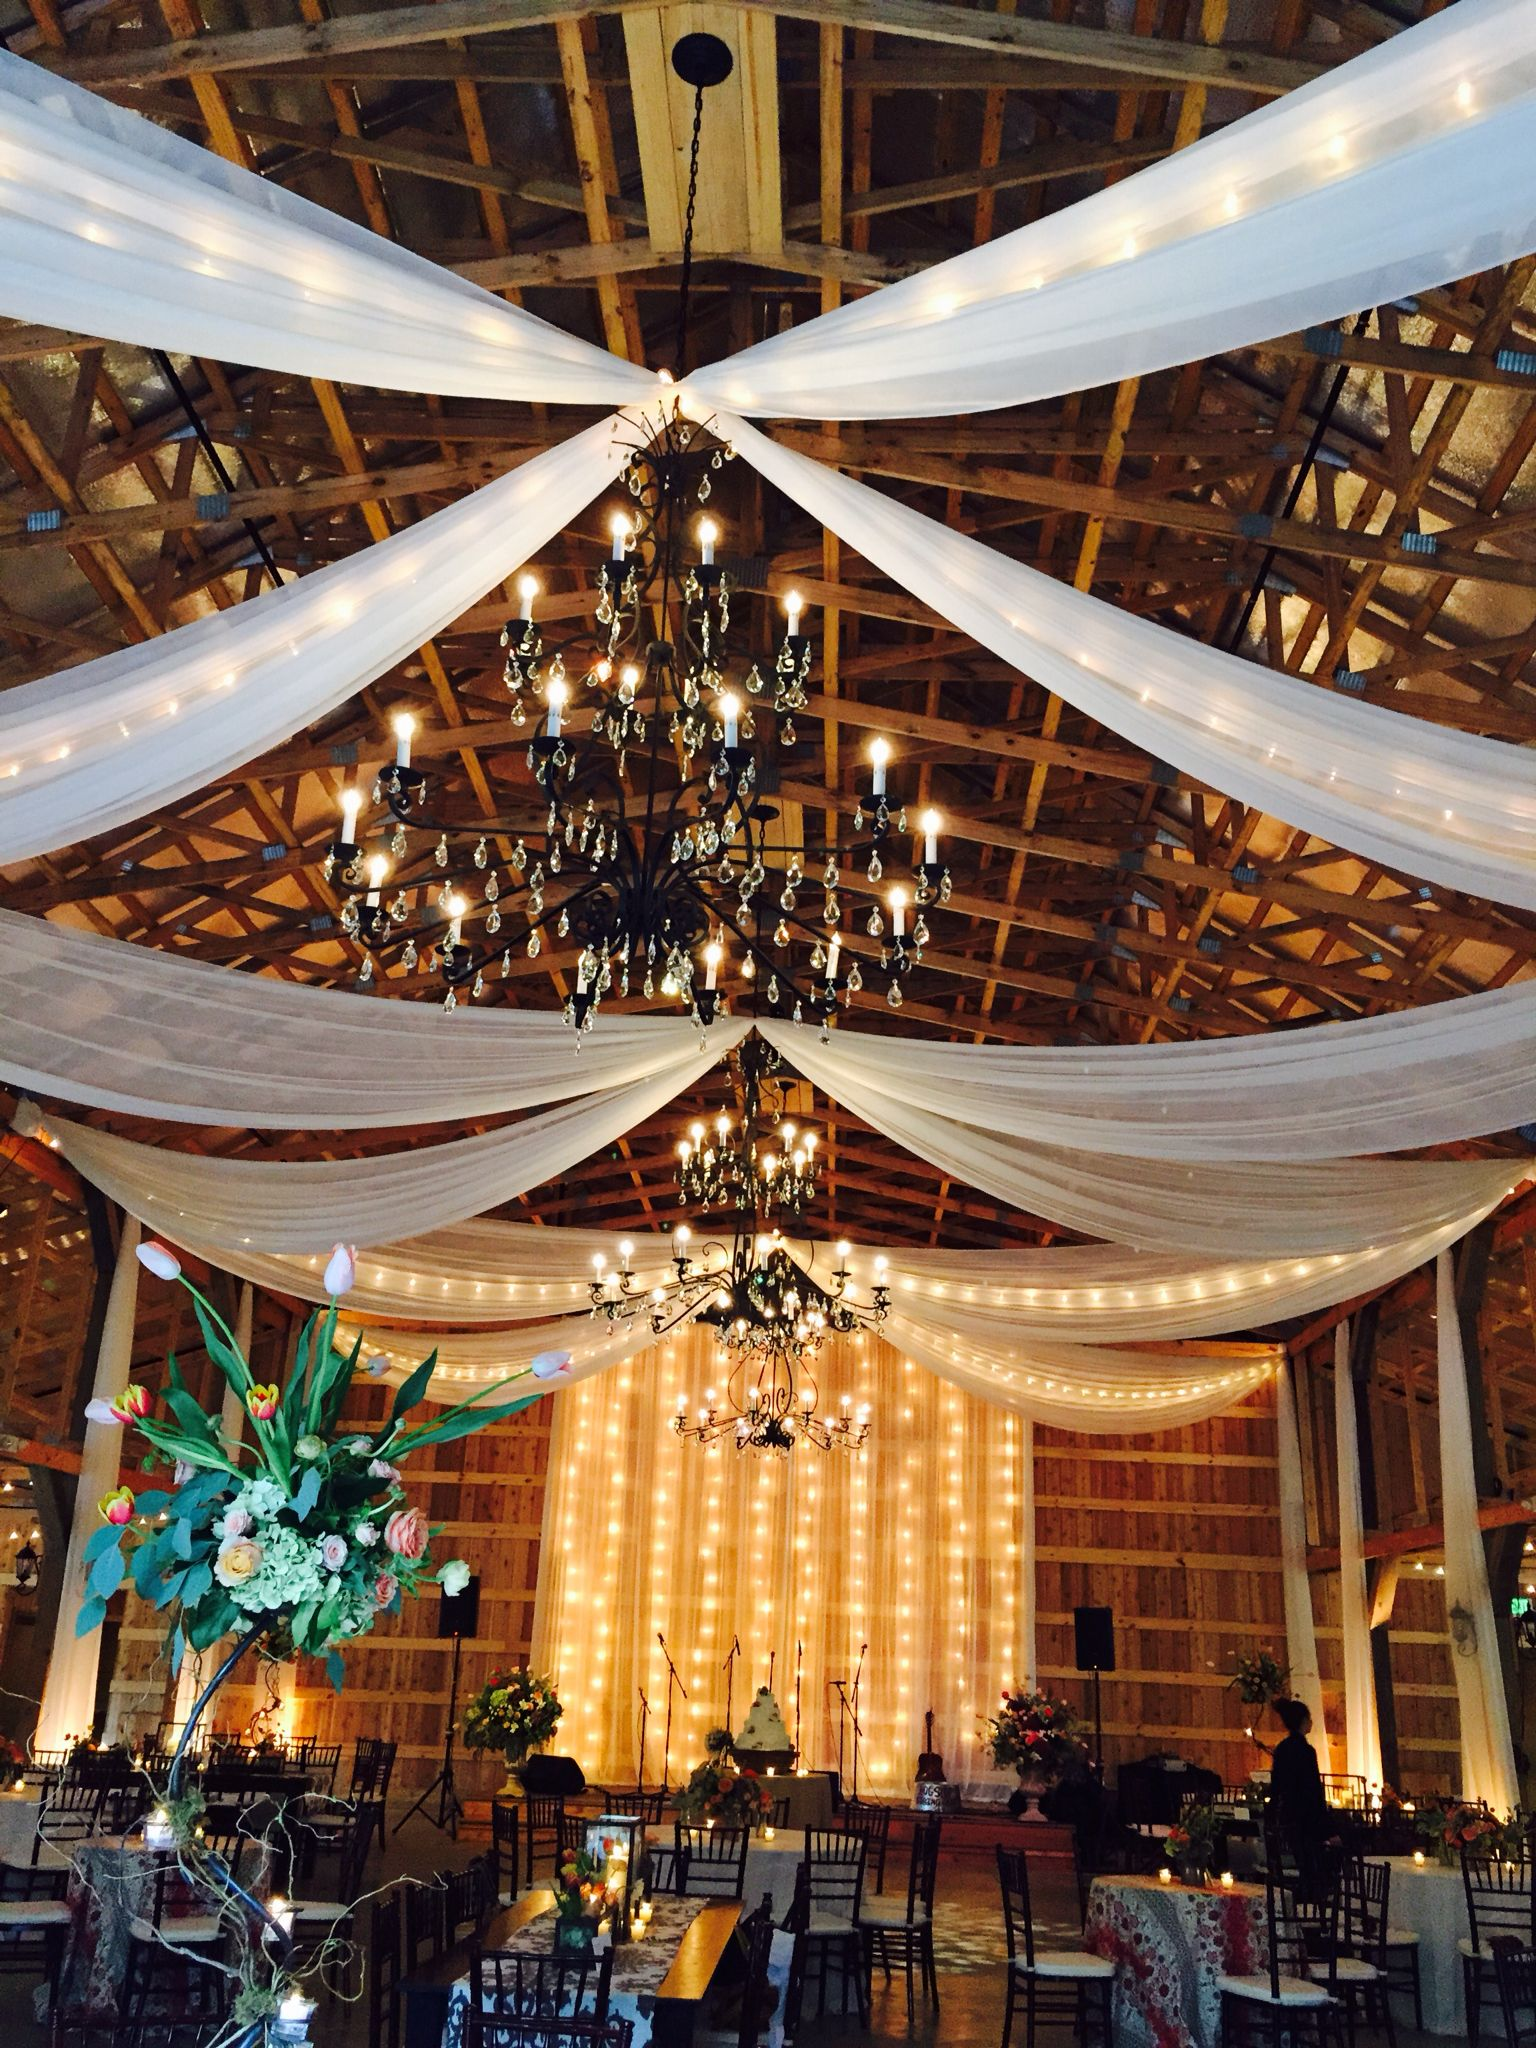 Saddle woods farm wedding venue design by big events draping by saddle woods farm wedding venue design by big events draping by nashville event draping junglespirit Image collections